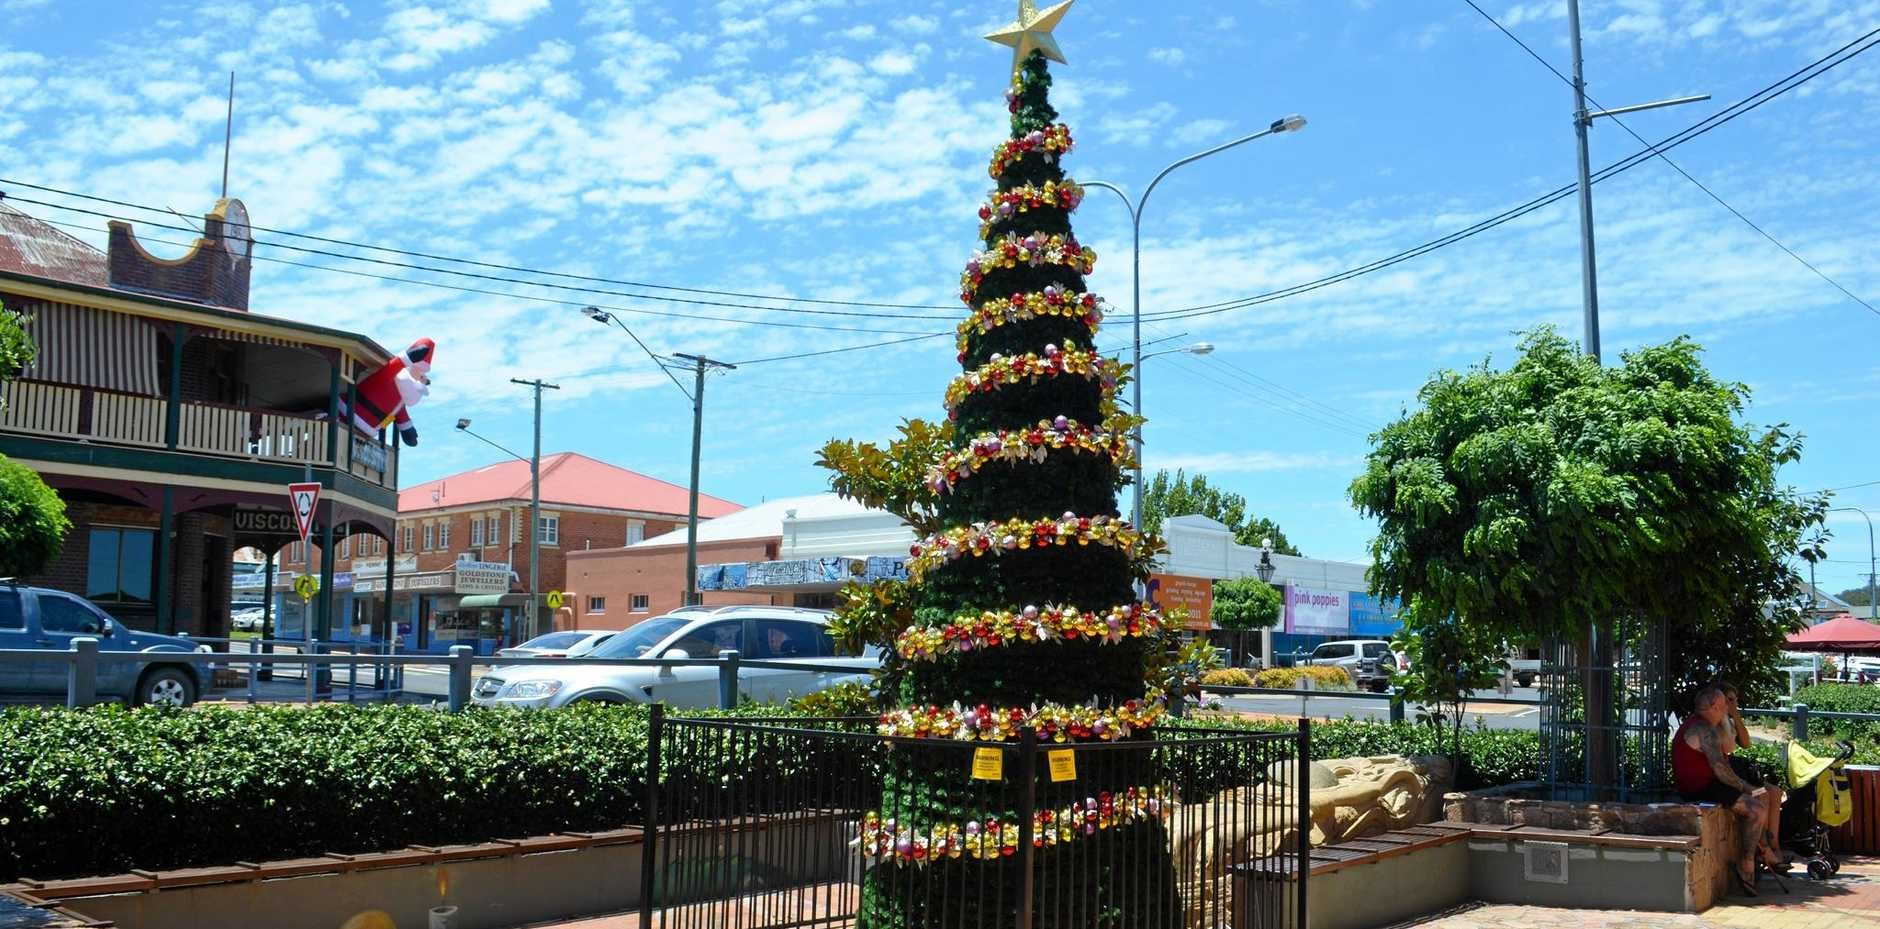 Christmas will arrive in Stanthorpe on Thursday as fun family activities fill the main street.